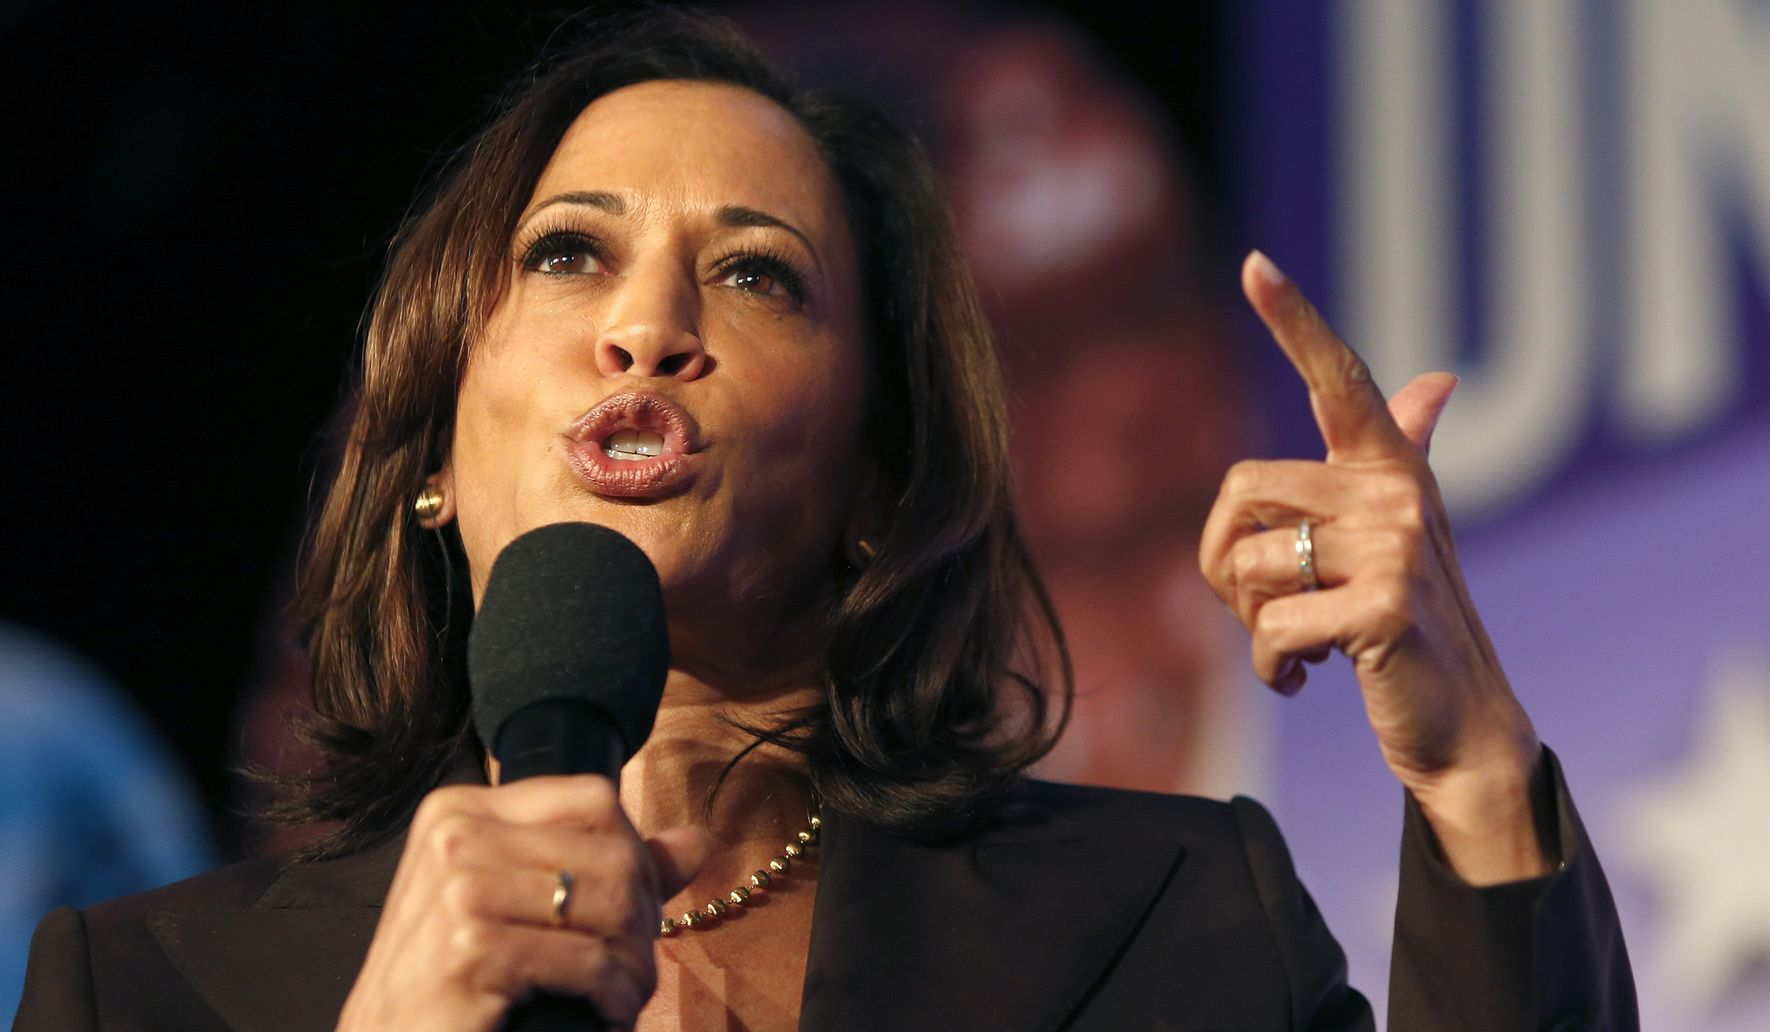 Harris takes aim at Trump Jr. on Twitter: 'You wouldn't know a joke if one raised you'